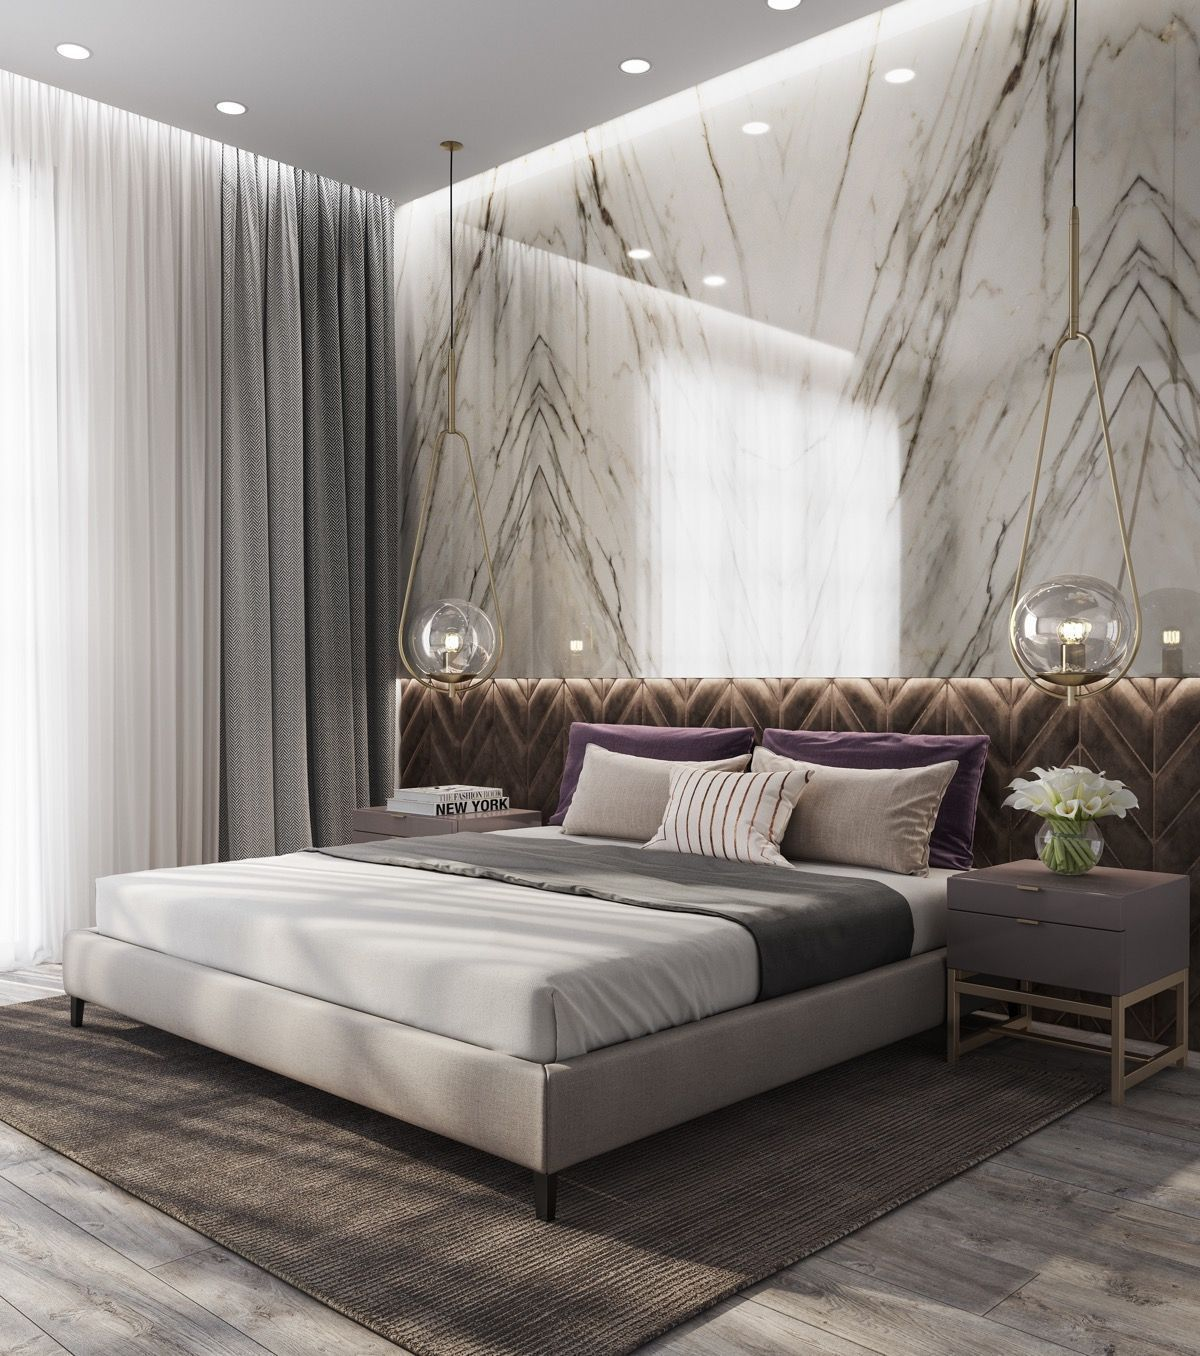 51 Luxury Bedrooms With Images Tips Accessories To Help You Design Yours Www Fiori Com Au Mod Modern Luxury Bedroom Luxurious Bedrooms Modern Bedroom Design